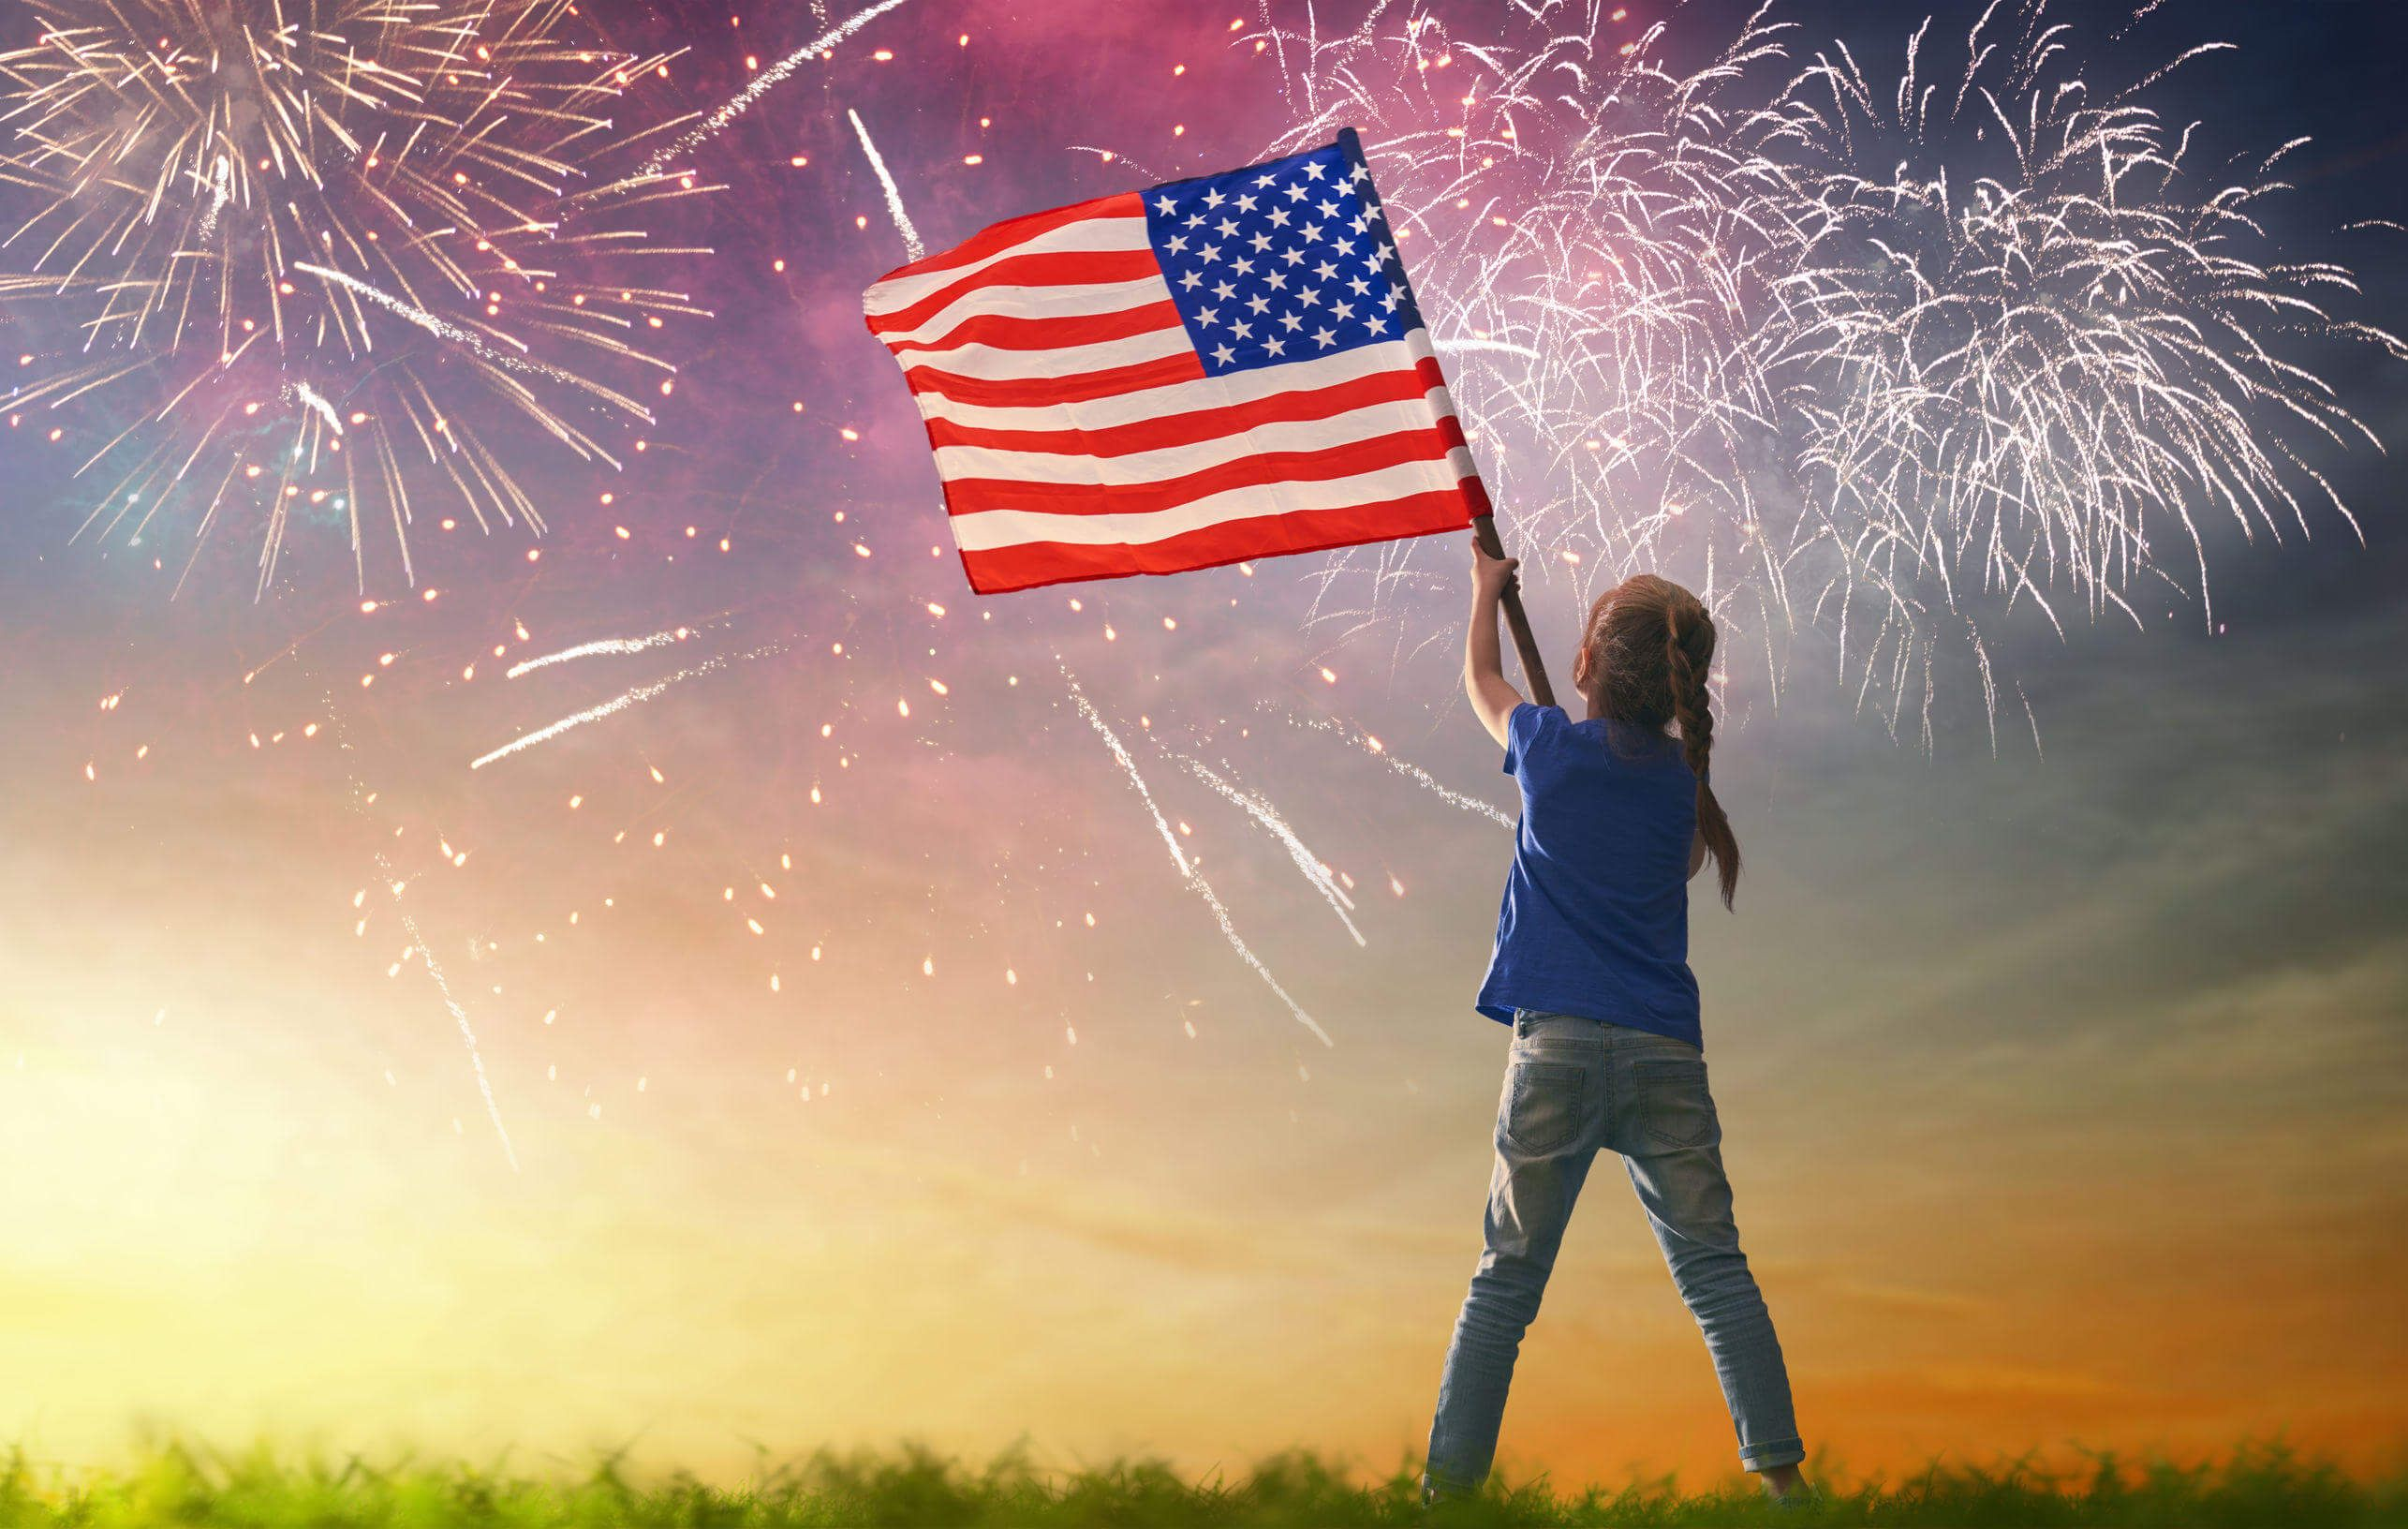 Happy Birthday America Images Happy Birthday America 4th Of July Images Patriotic Holidays